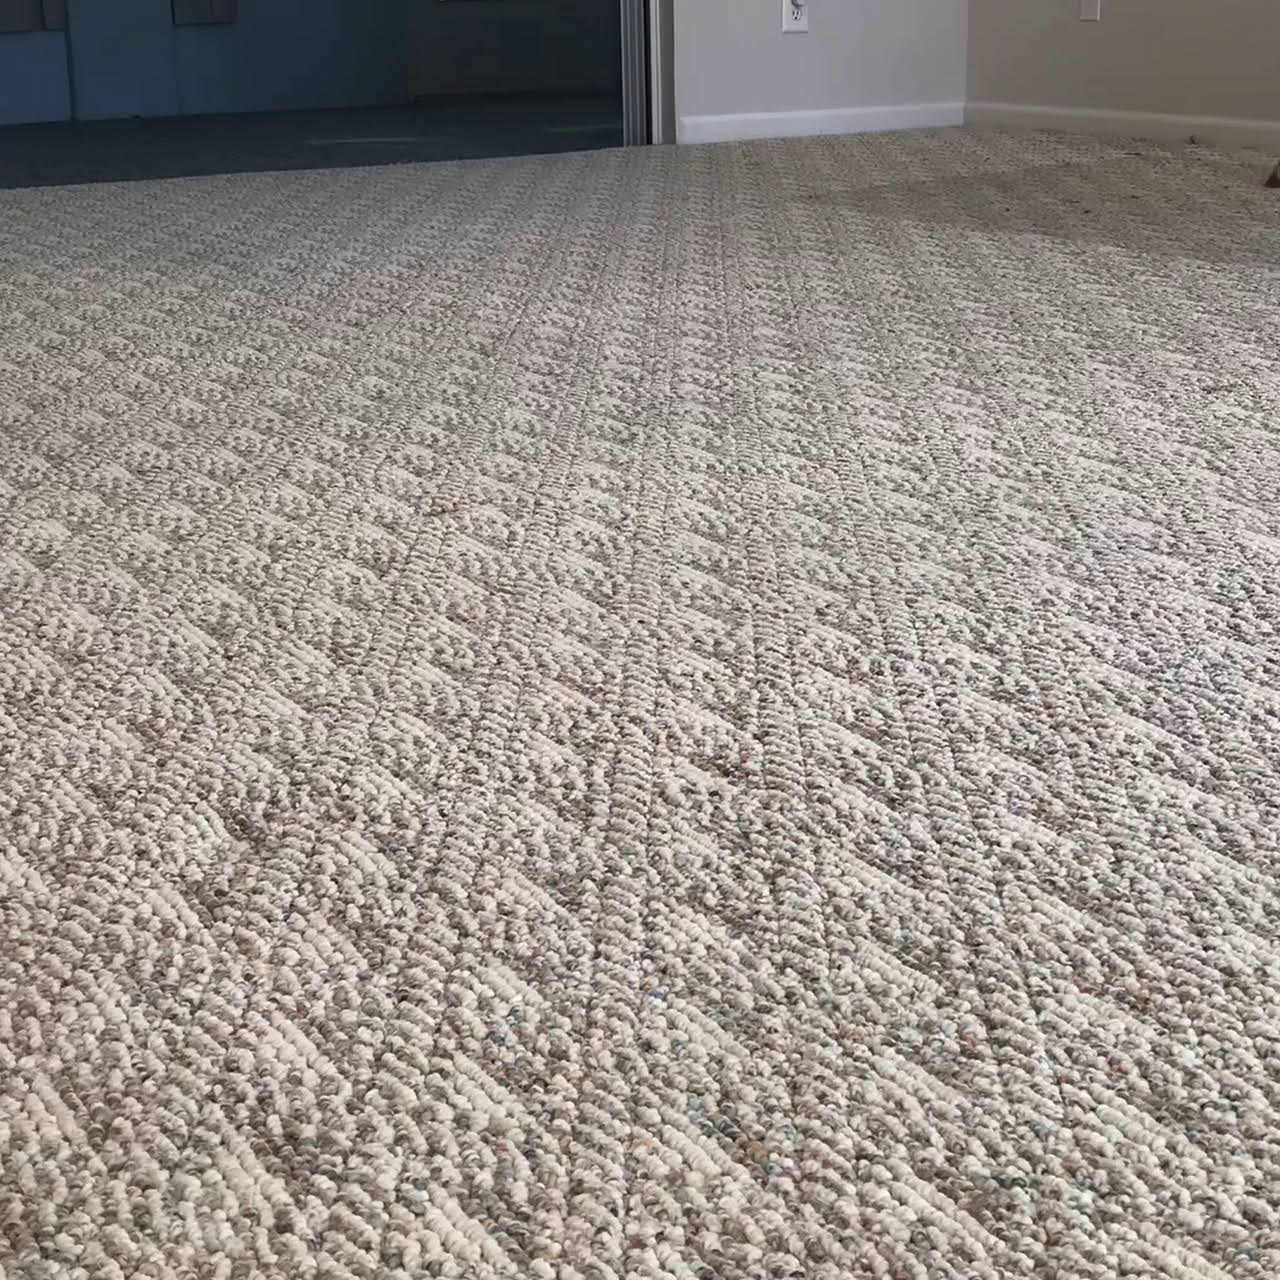 Carpet, and Wool Rug Cleaning